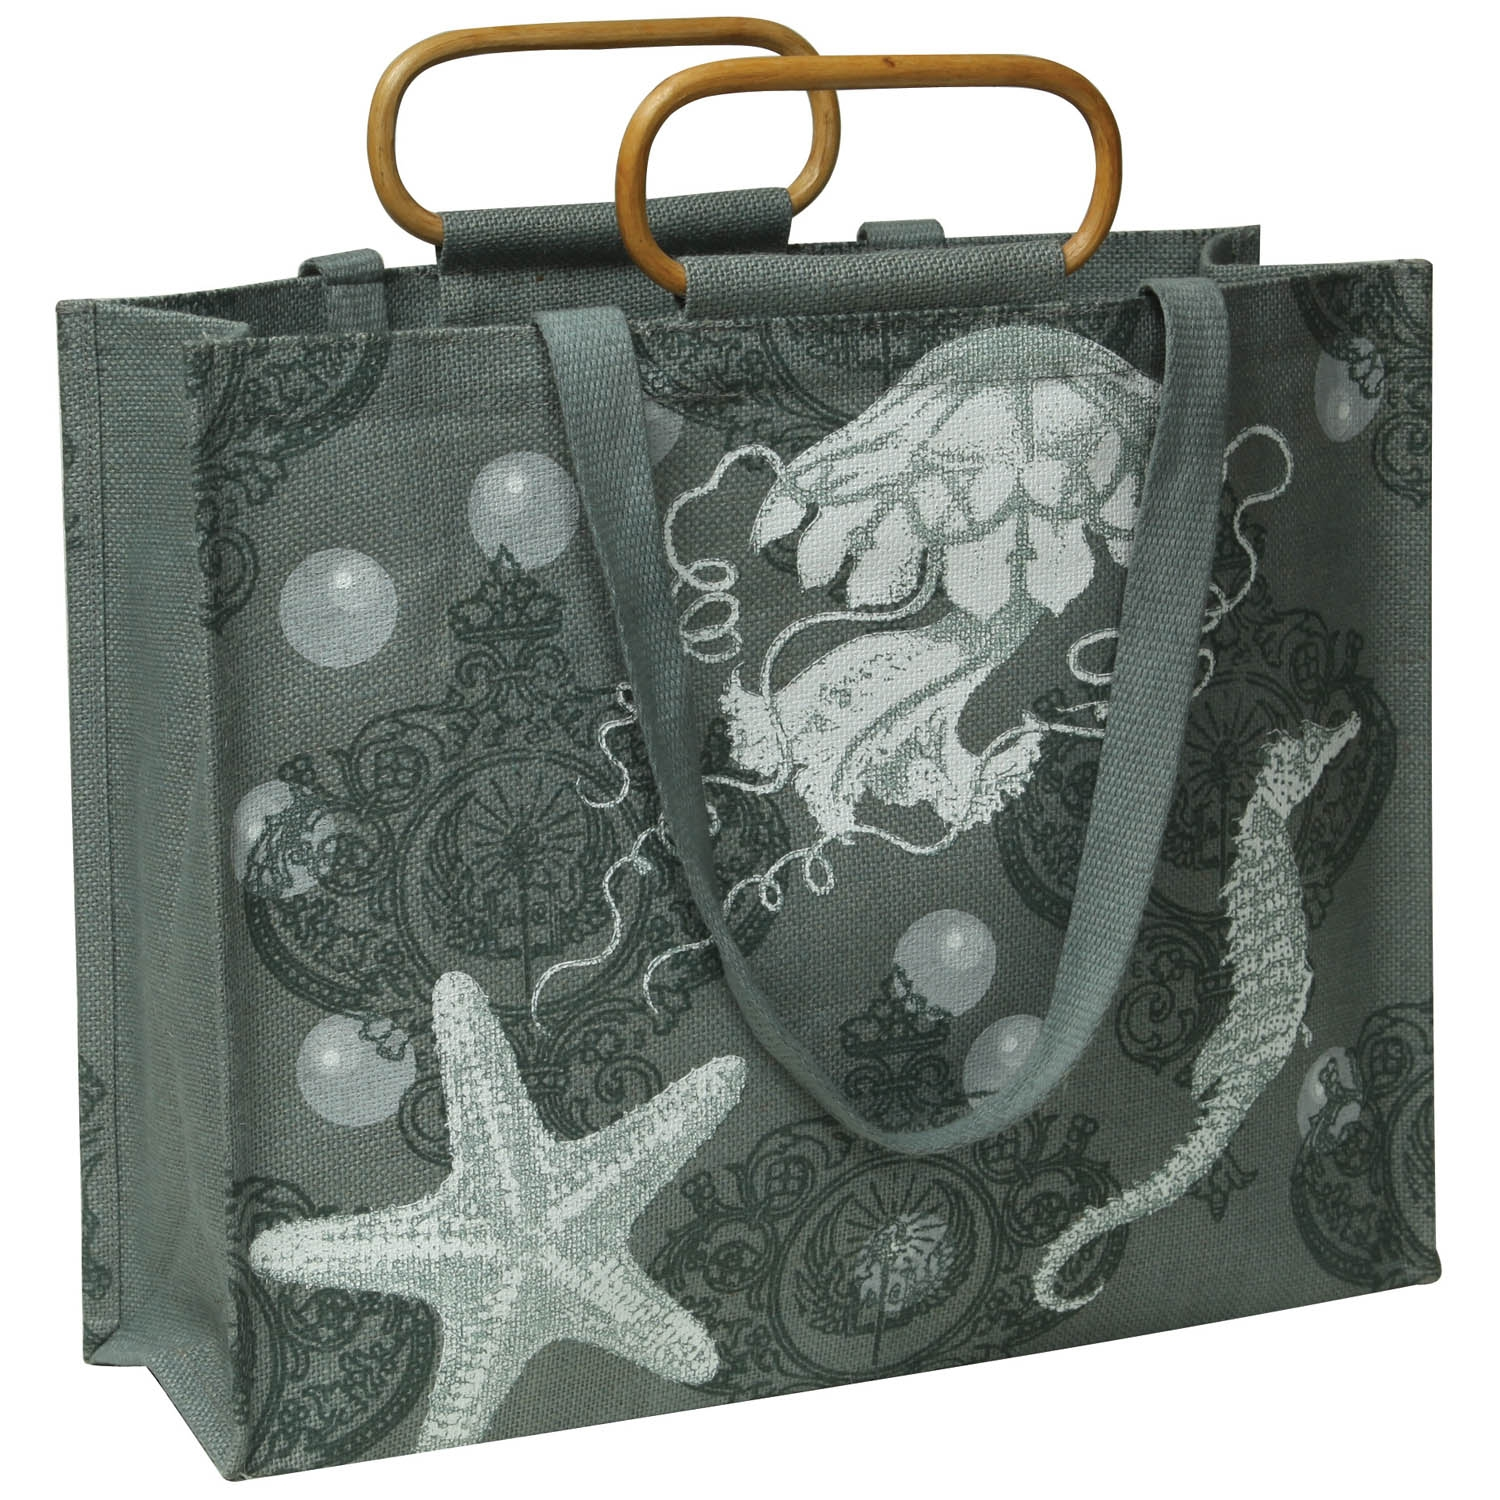 9901-71 - Jute Tote - Sealife by HomArt